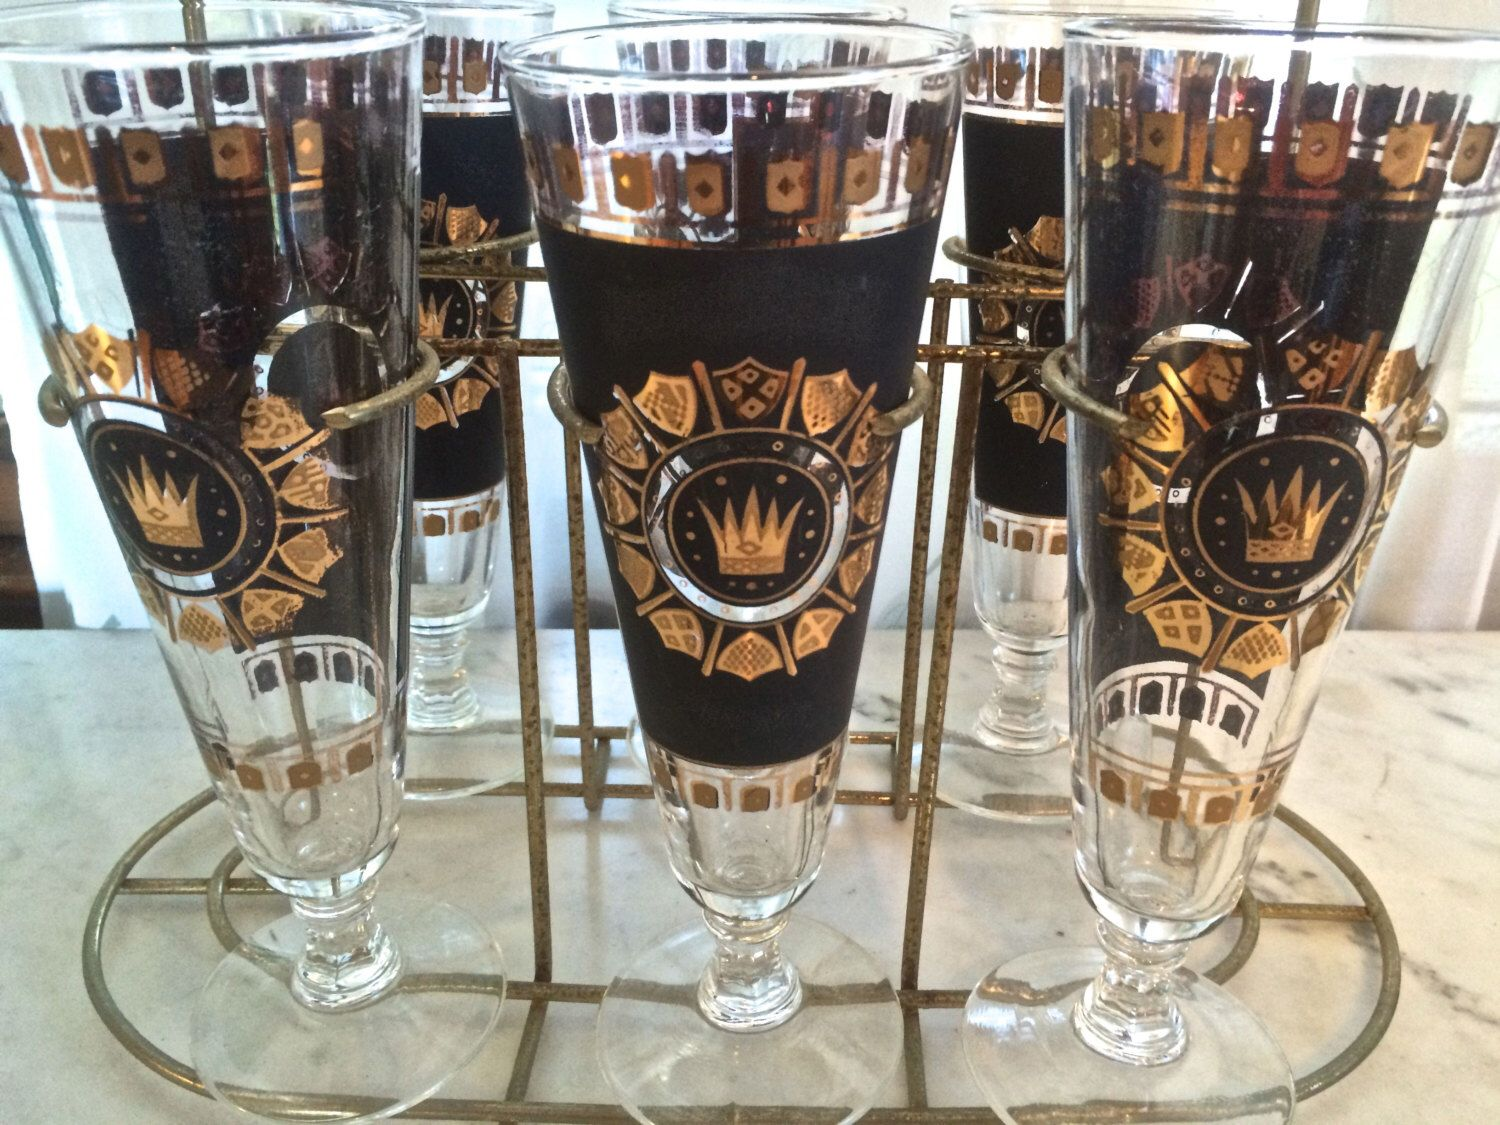 Vintage Black And Gold Crown Pilsner Glasses In Gold Metal Carrier  Midcentury Barware Retro Barware Vintage Beer Glasses Vintage Barware